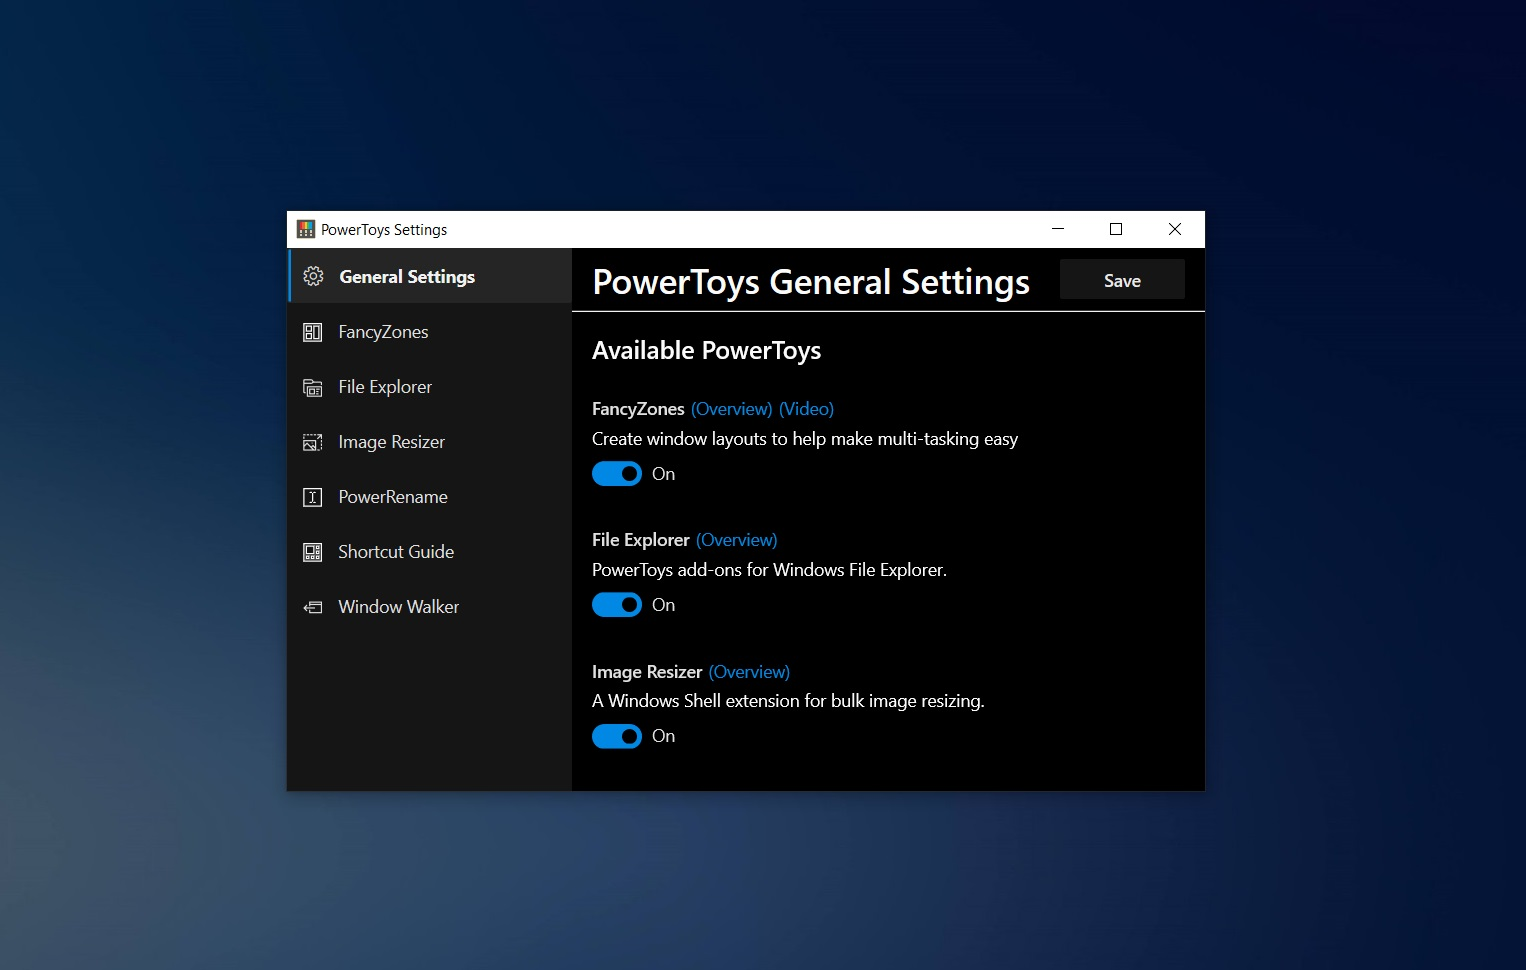 Windows 10 PowerToys gets built-in image resizer